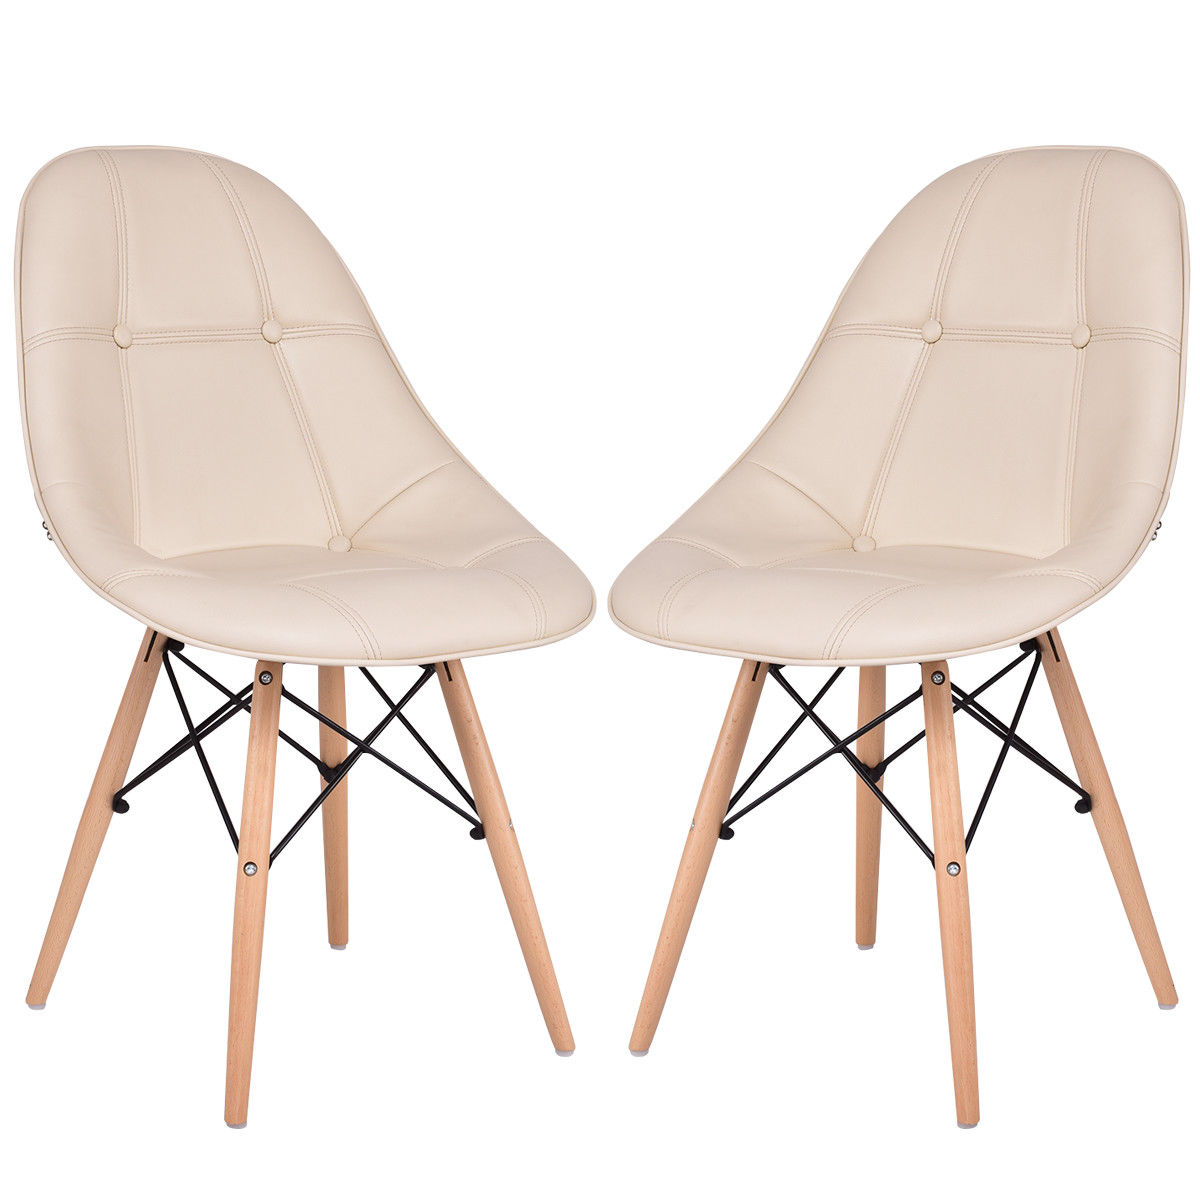 accent kitchen chair dining chair with pu leather seat solid wood swivel function Giantex Set of 2 Dining Side Chair Armless PU Leather Seat with Wood Legs Beige Modern Dining Room Furniture HW56505WH